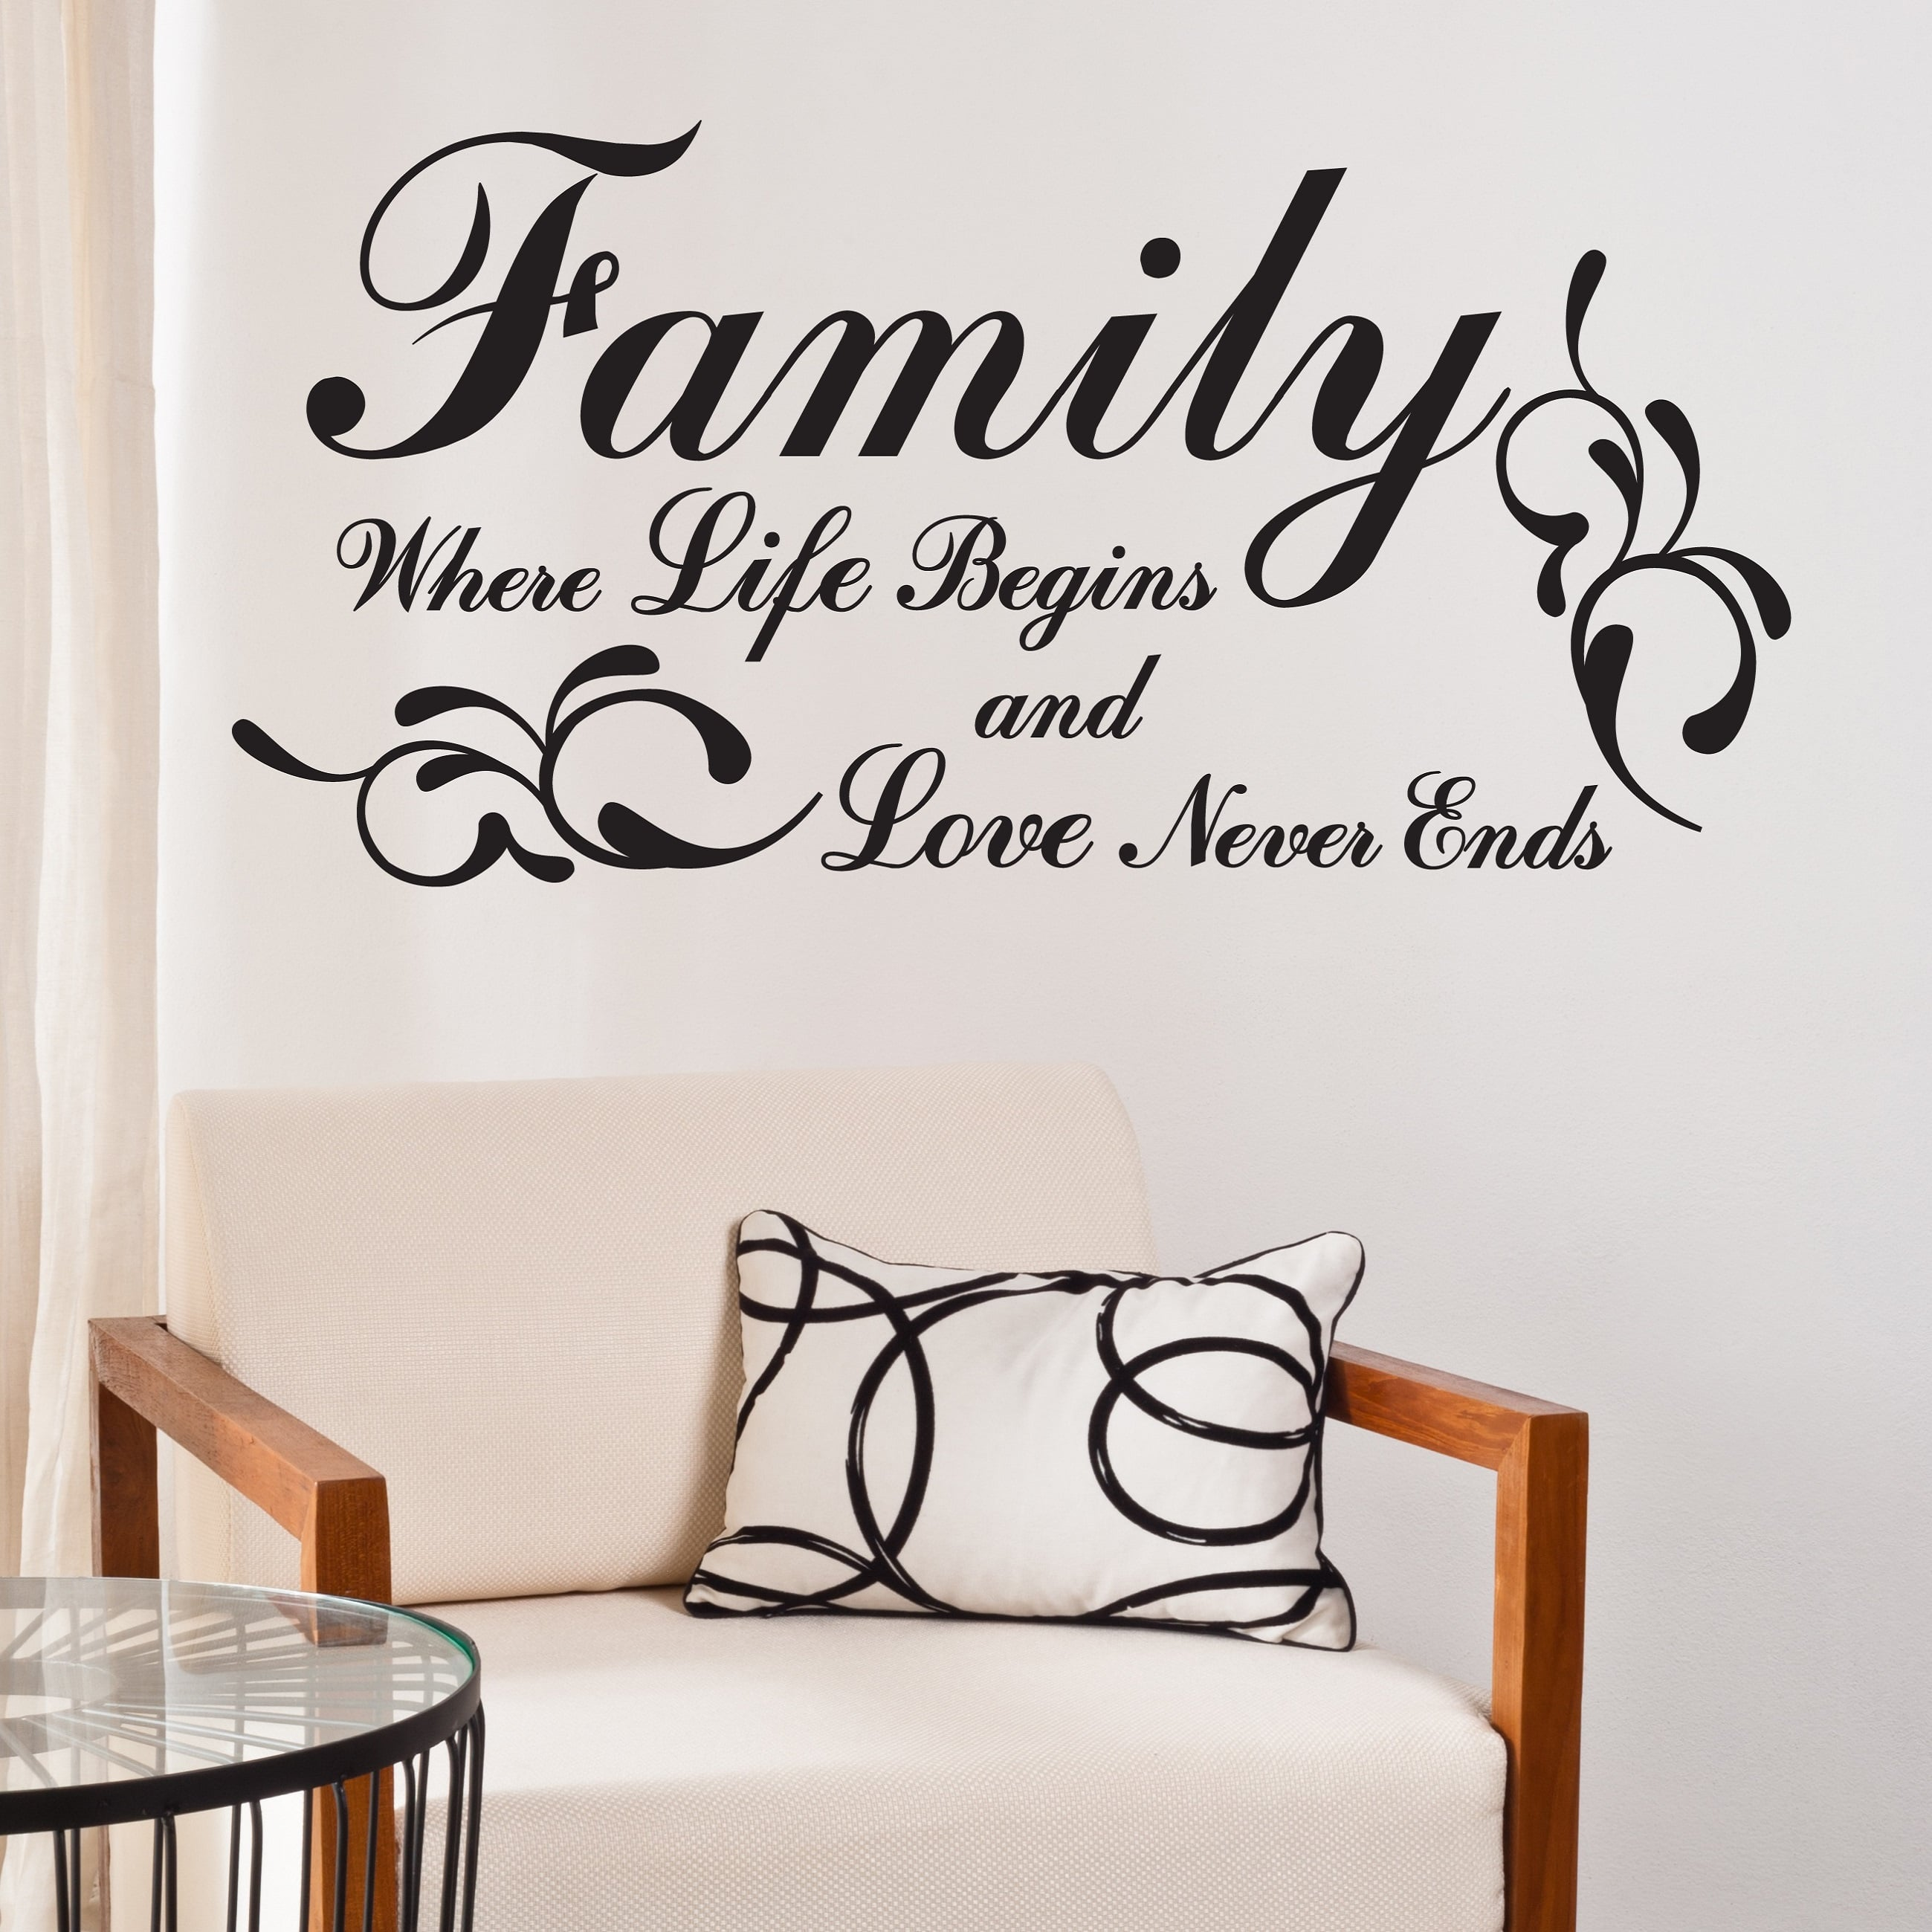 Wallsticker Family - Where Life Begins